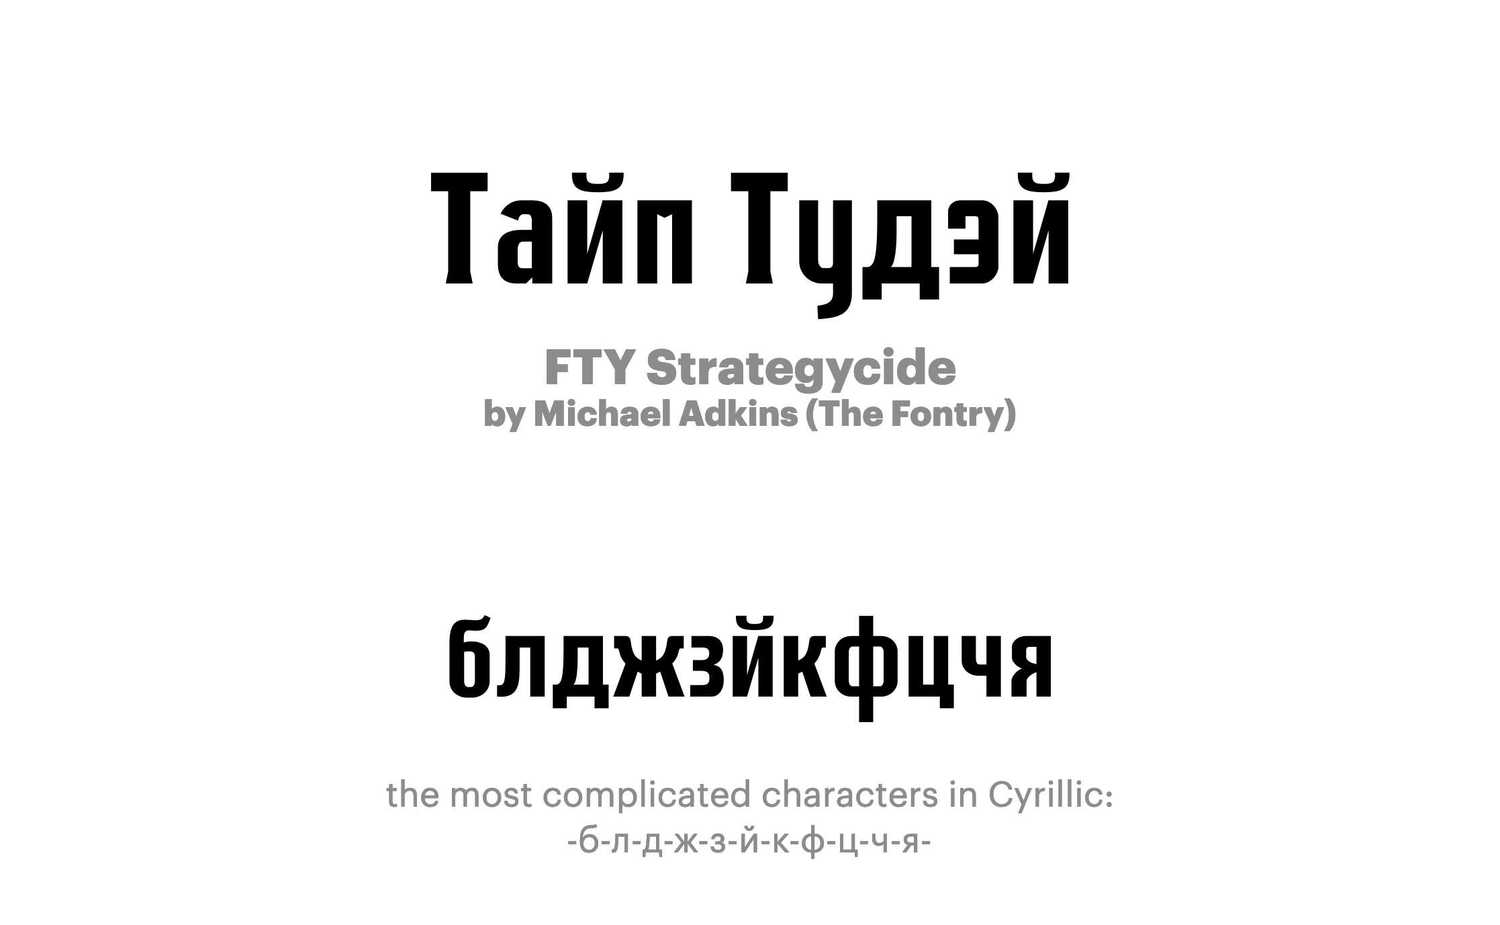 FTY-Strategycide-by-Michael-Adkins-(The-Fontry)